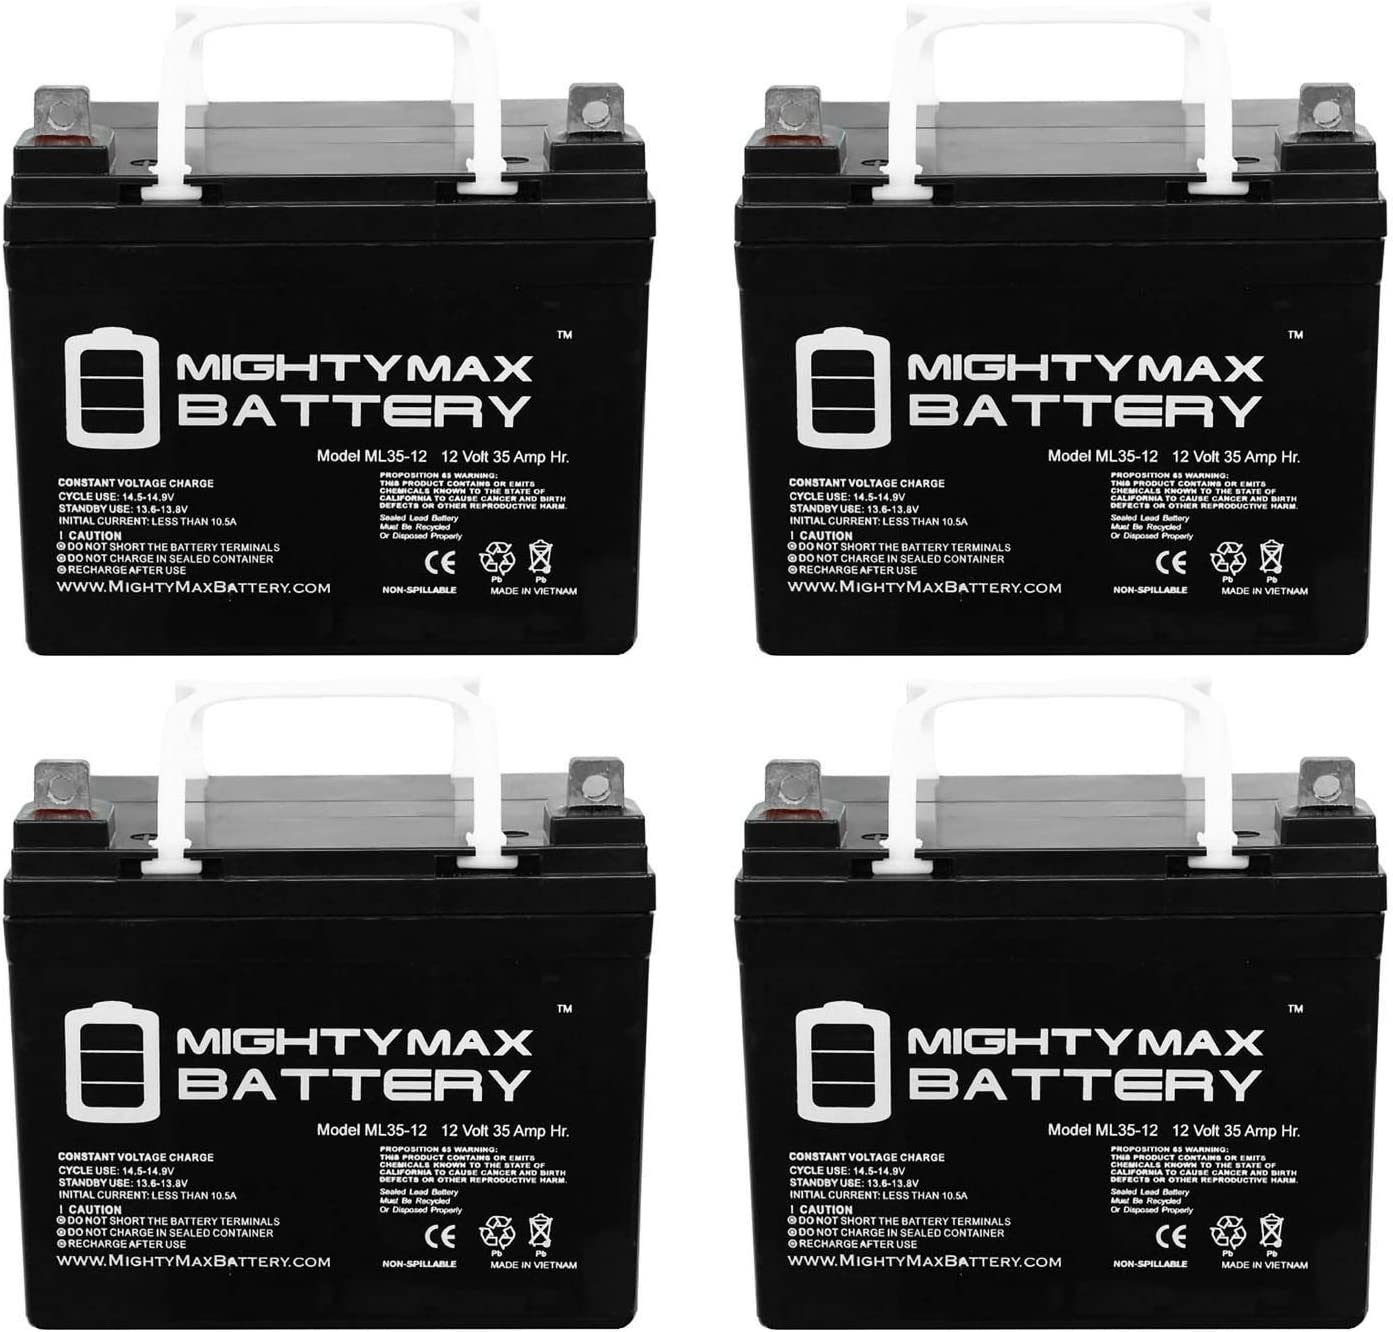 Mighty Max Battery ML35-12 - 12 Volt 35 AH SLA Battery - Pack of 4 Brand Product